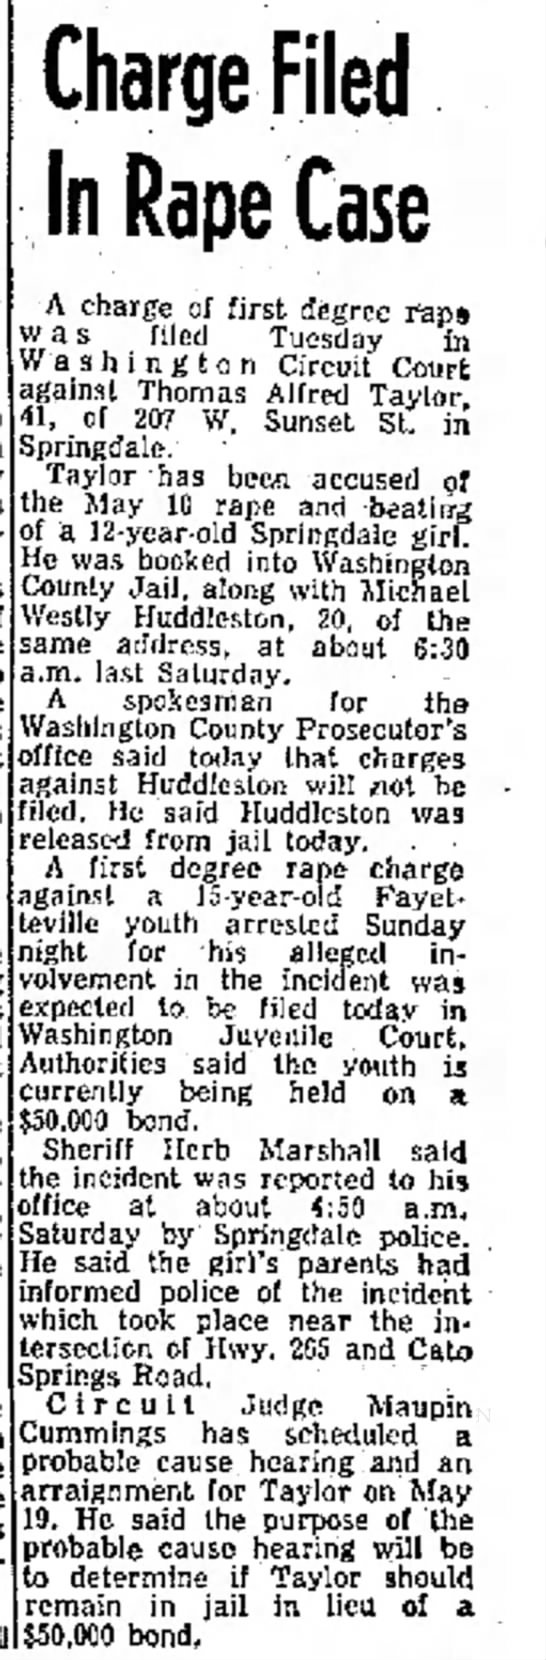 Thomas Alfred Taylor Northwest Arkansas Times, Fayetteville, Arkansas, Wed,5-14-1975 Page 1 -